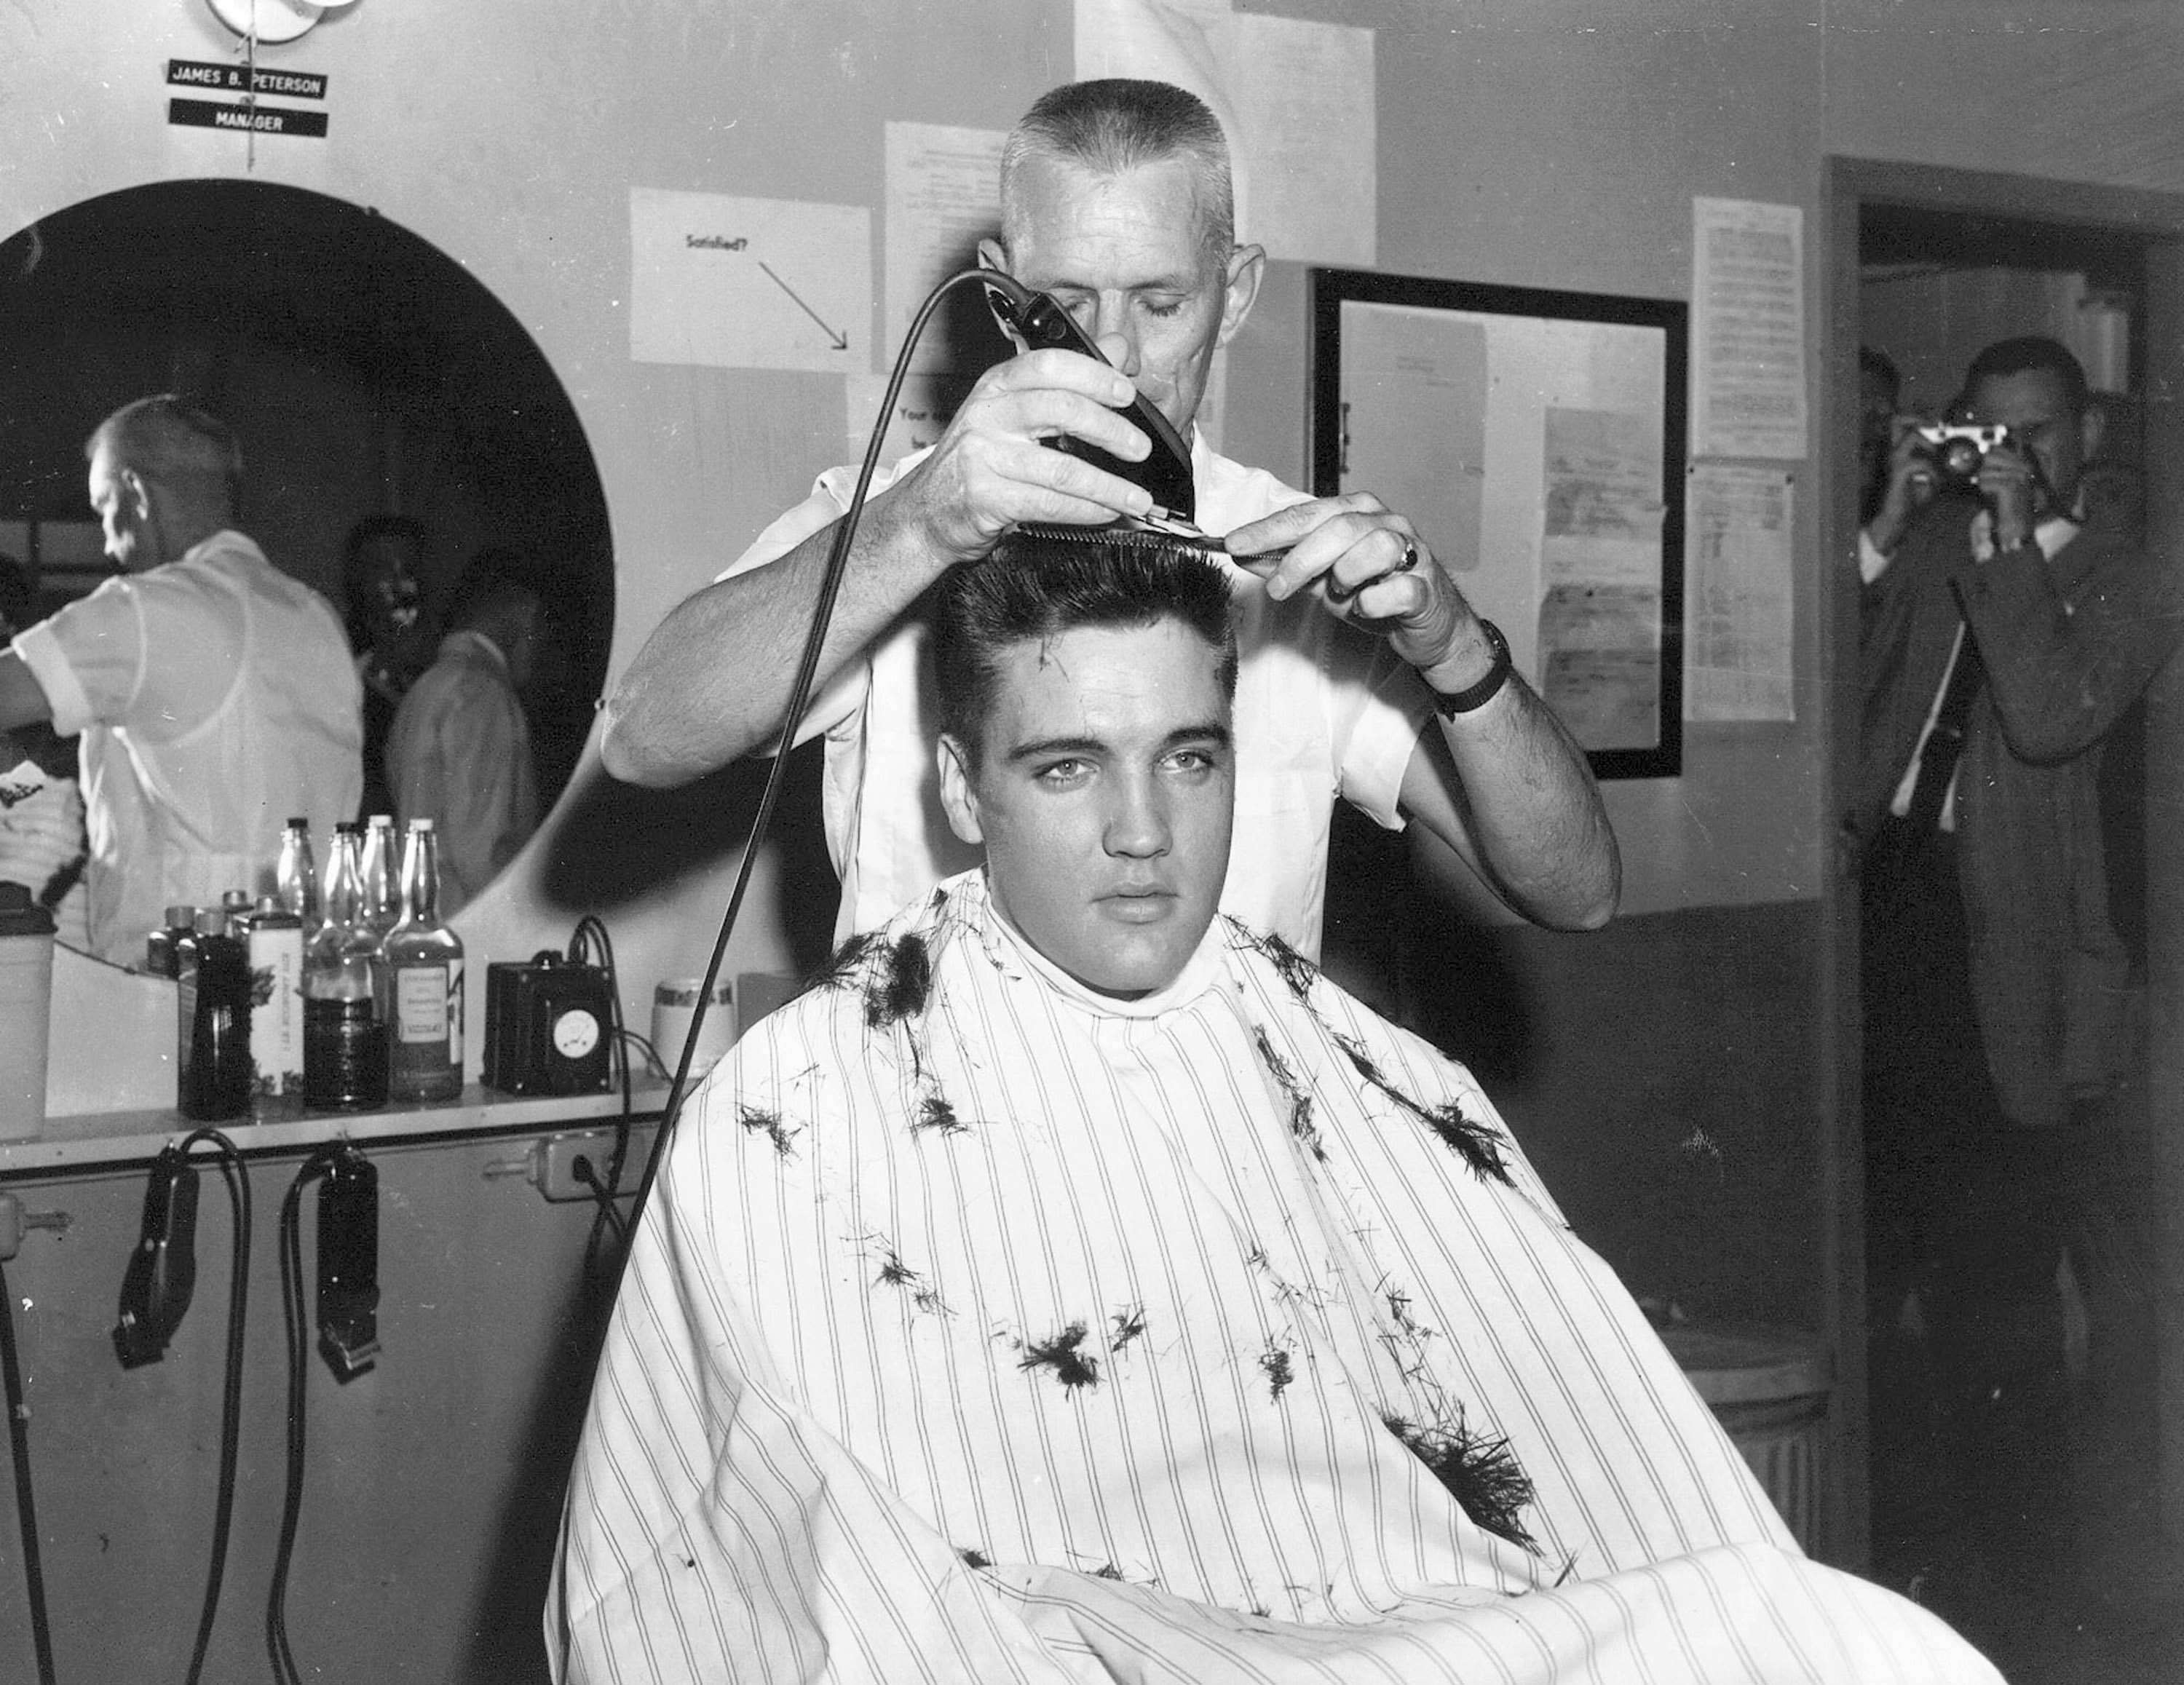 10 Interesting Photographs of Elvis Presley Joins the Army